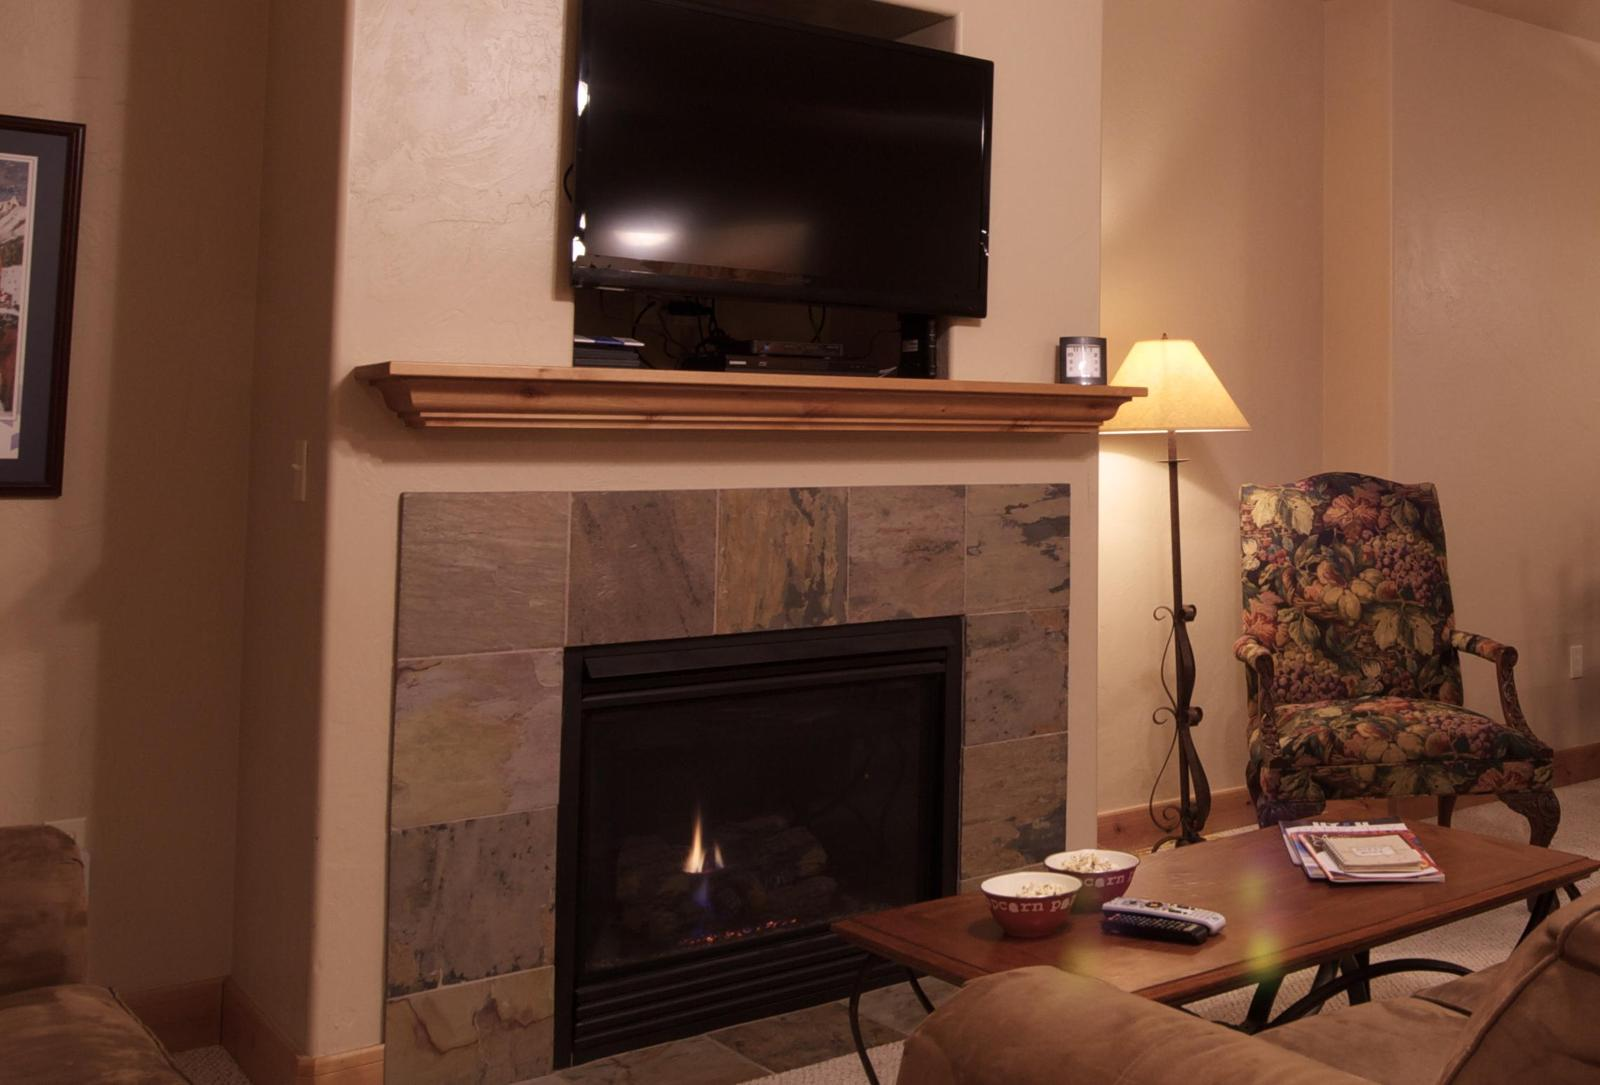 Gas fireplace and flat panel TV with cable & DVD player